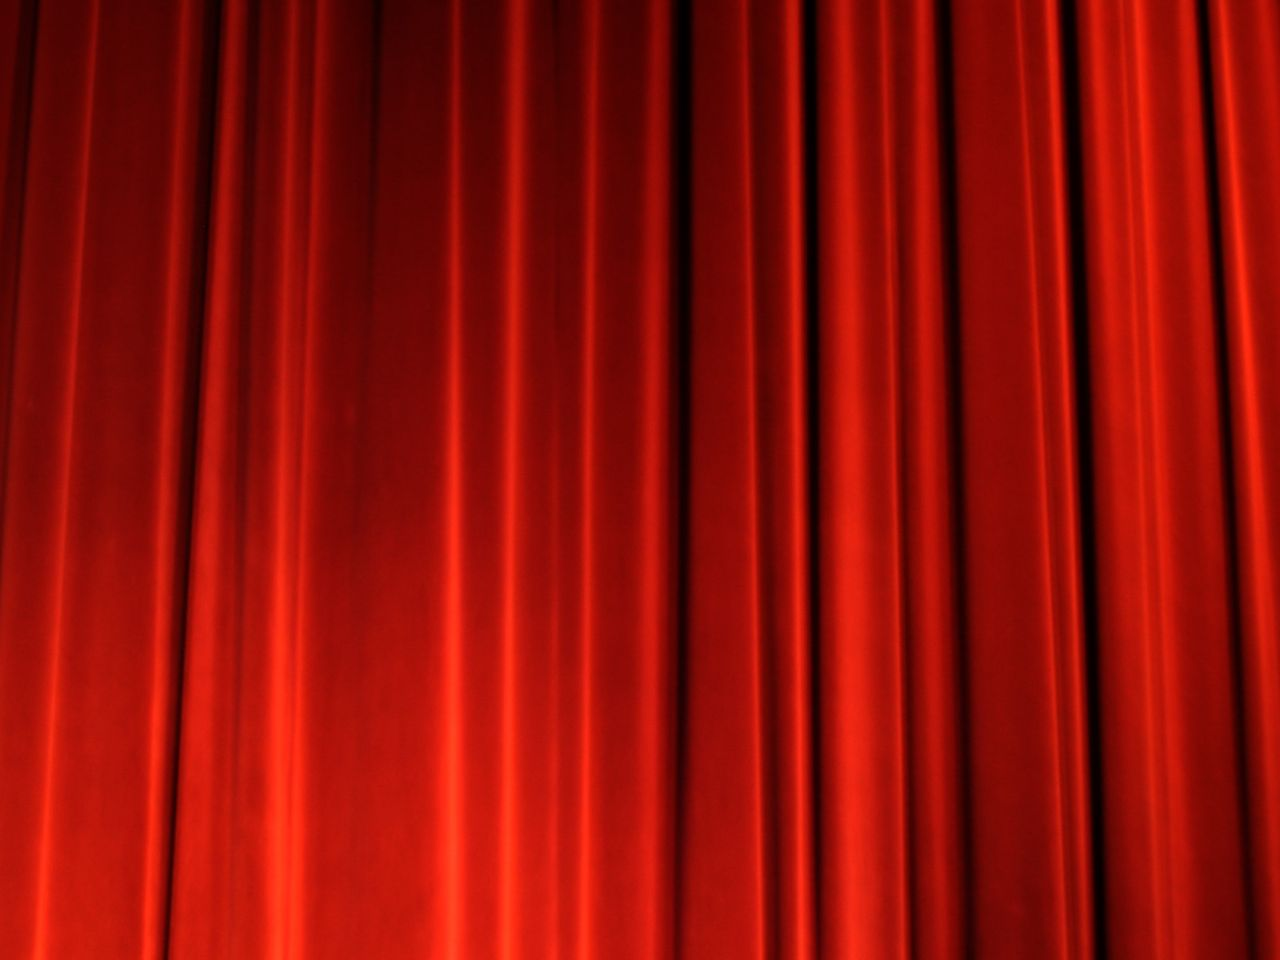 red curtains theatre - photo #26